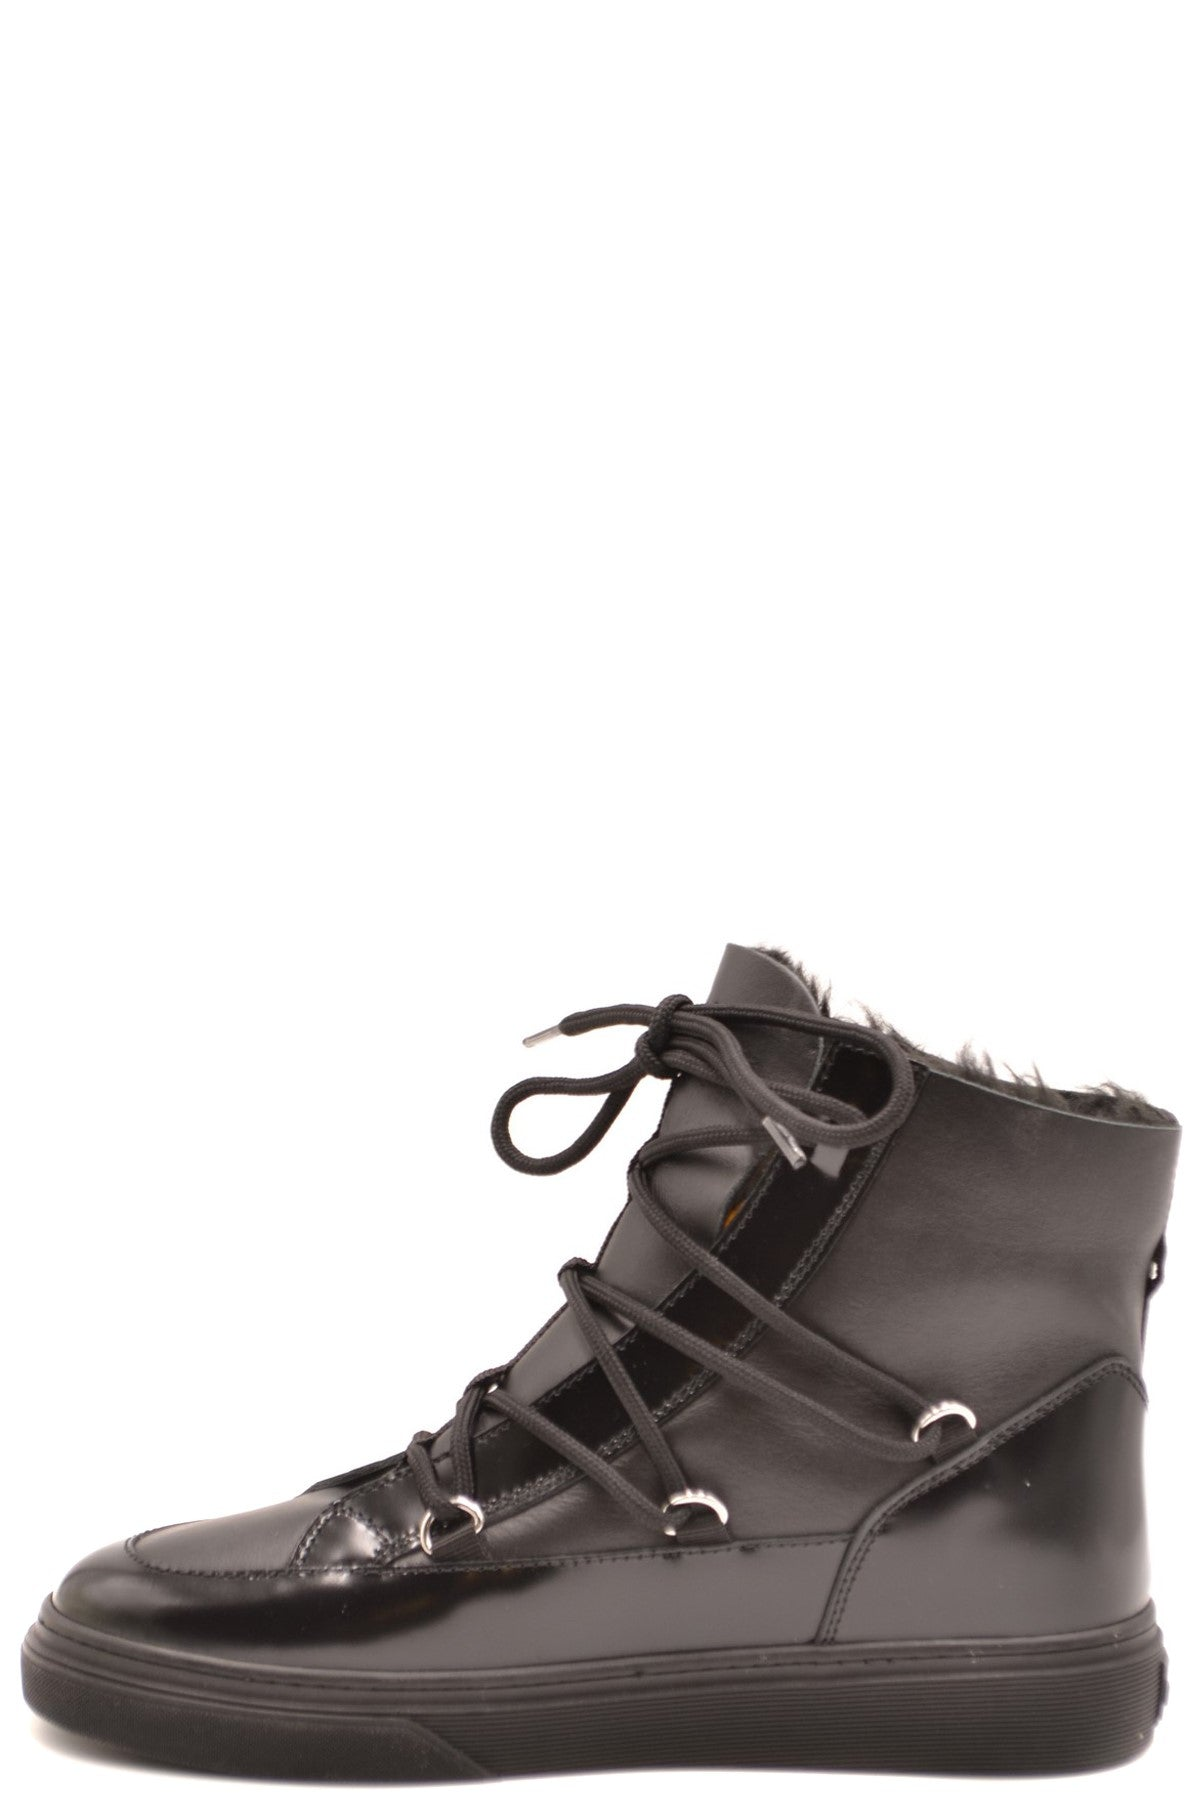 Shoes Hogan-Women's Fashion - Women's Shoes - Women's Boots-Product Details Terms: New With LabelMain Color: BlackType Of Accessory: BootsSeason: Fall / WinterMade In: ItalyGender: WomanSize: EuComposition: Leather 100%Year: 2020Manufacturer Part Number: Hxw3420Z960Hnrb999-Keyomi-Sook